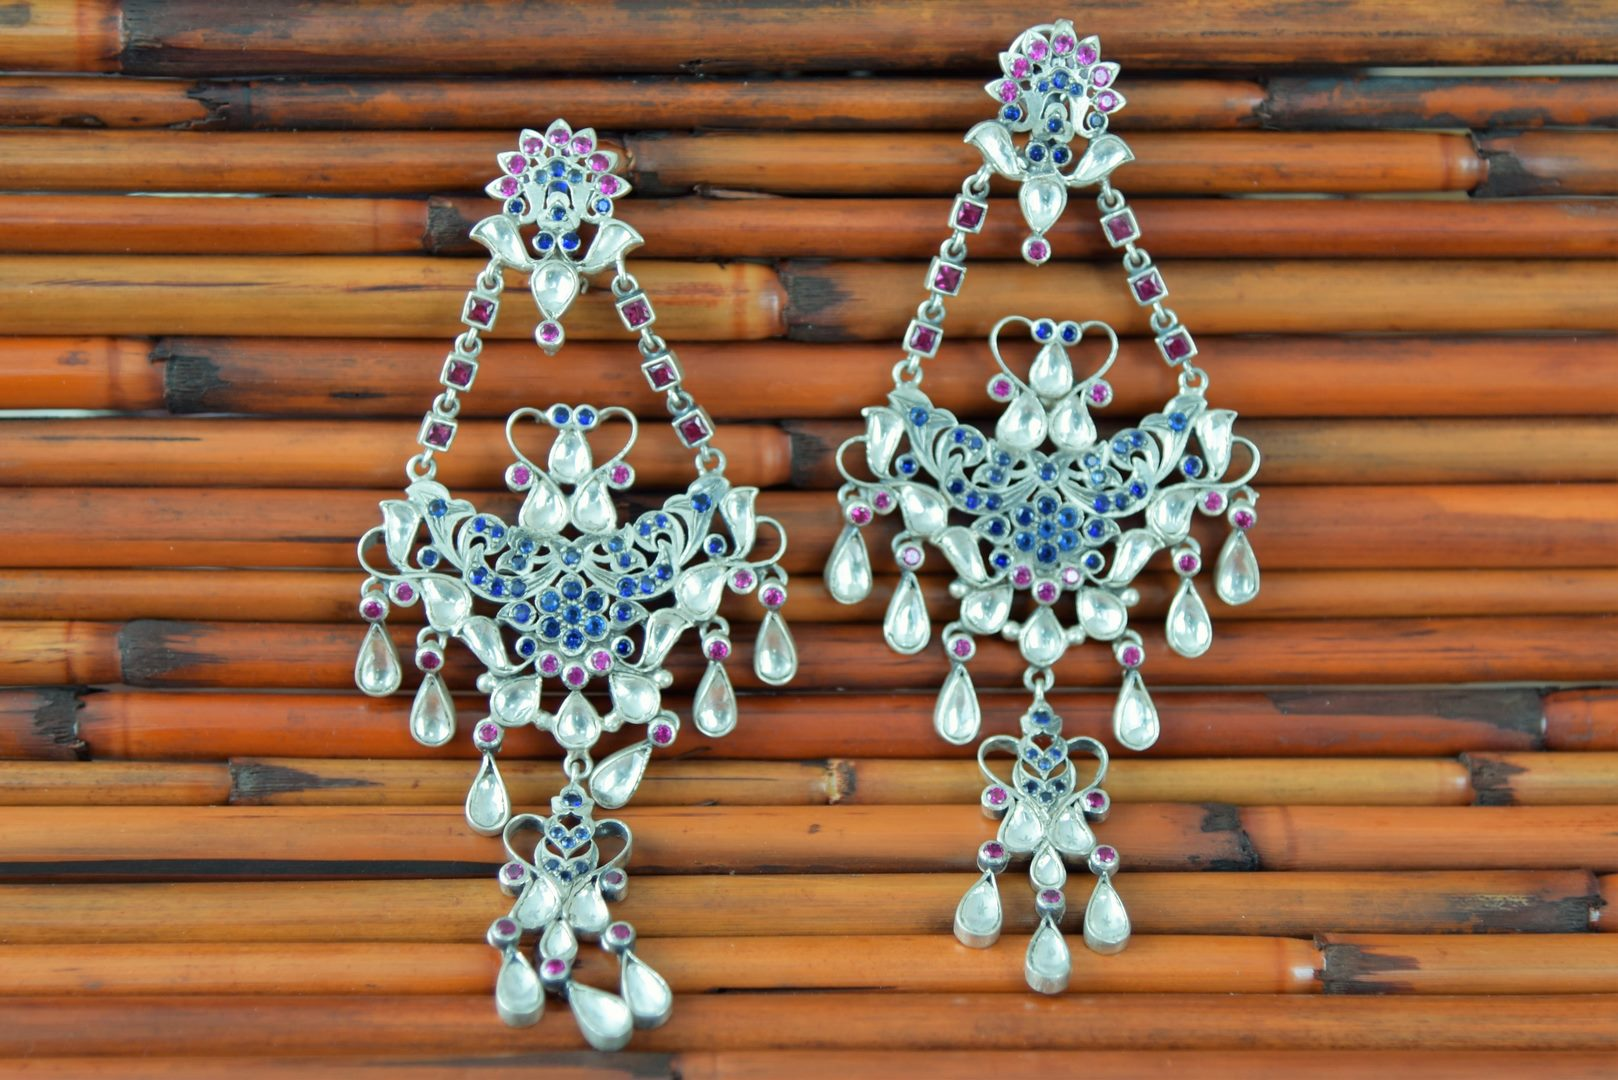 Buy multicolor glass Amrapali silver chandelier earrings online in USA. Enhance your ethnic style with exquisite Indian jewelry from Pure Elegance Indian fashion store in USA. Pick from a range of stunning silver gold plated earrings, silver gold plated necklaces, silver jewelry for a perfect finishing...-closeup